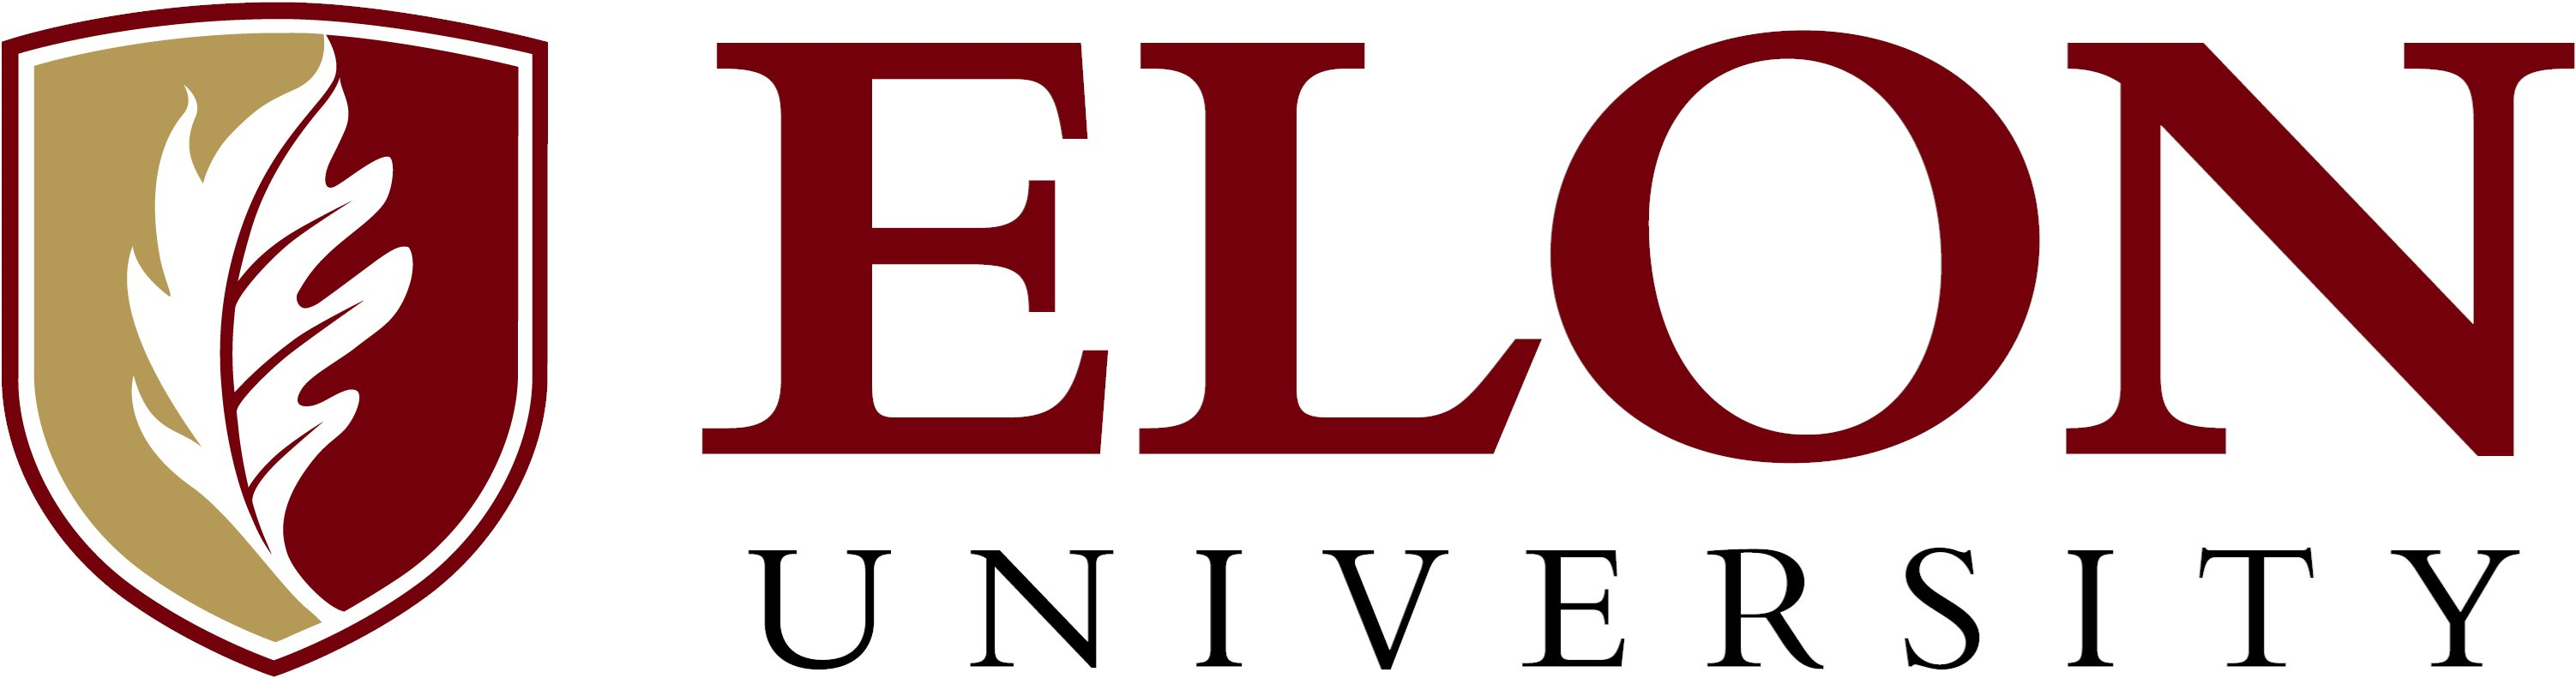 Elon University primary signature example